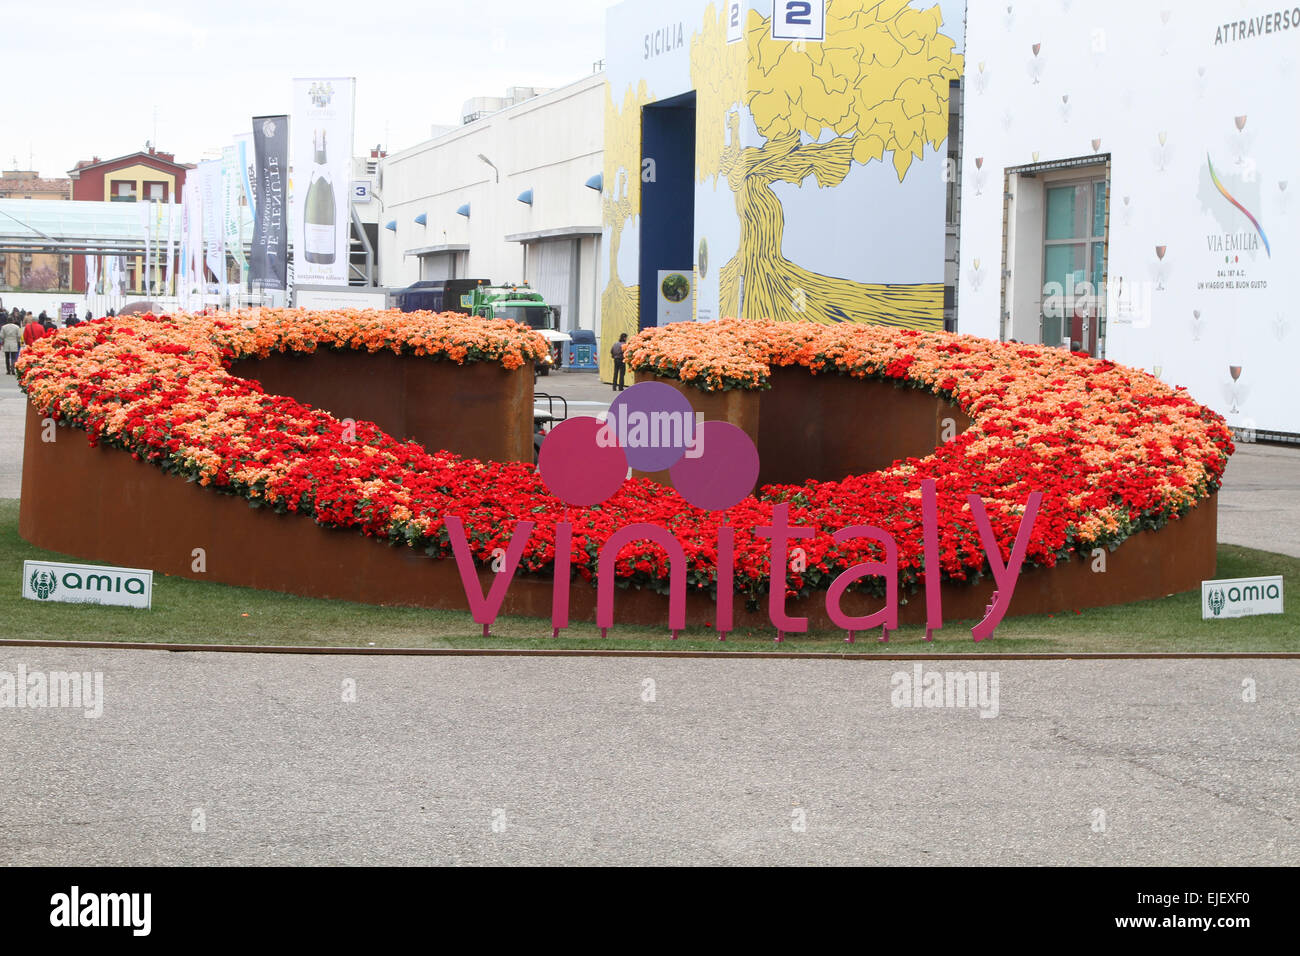 Verona, Italy. 25th March, 2015. entrance of the Vinitaly exposition in Verona on 25 March 2015 Credit:  Andrea - Stock Image